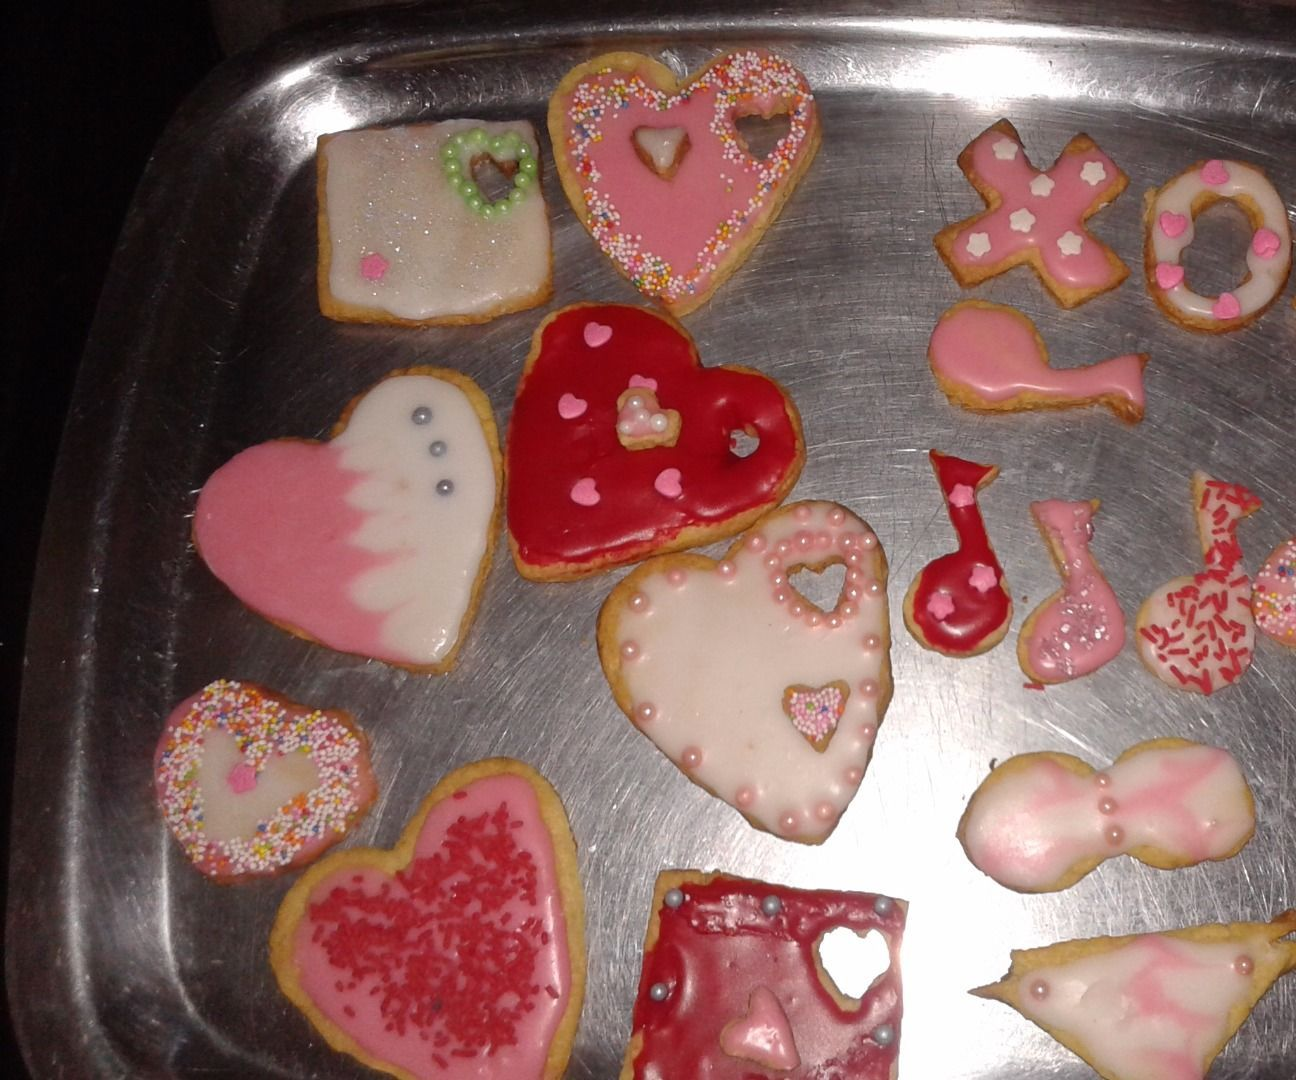 Home baked and glazed cookies